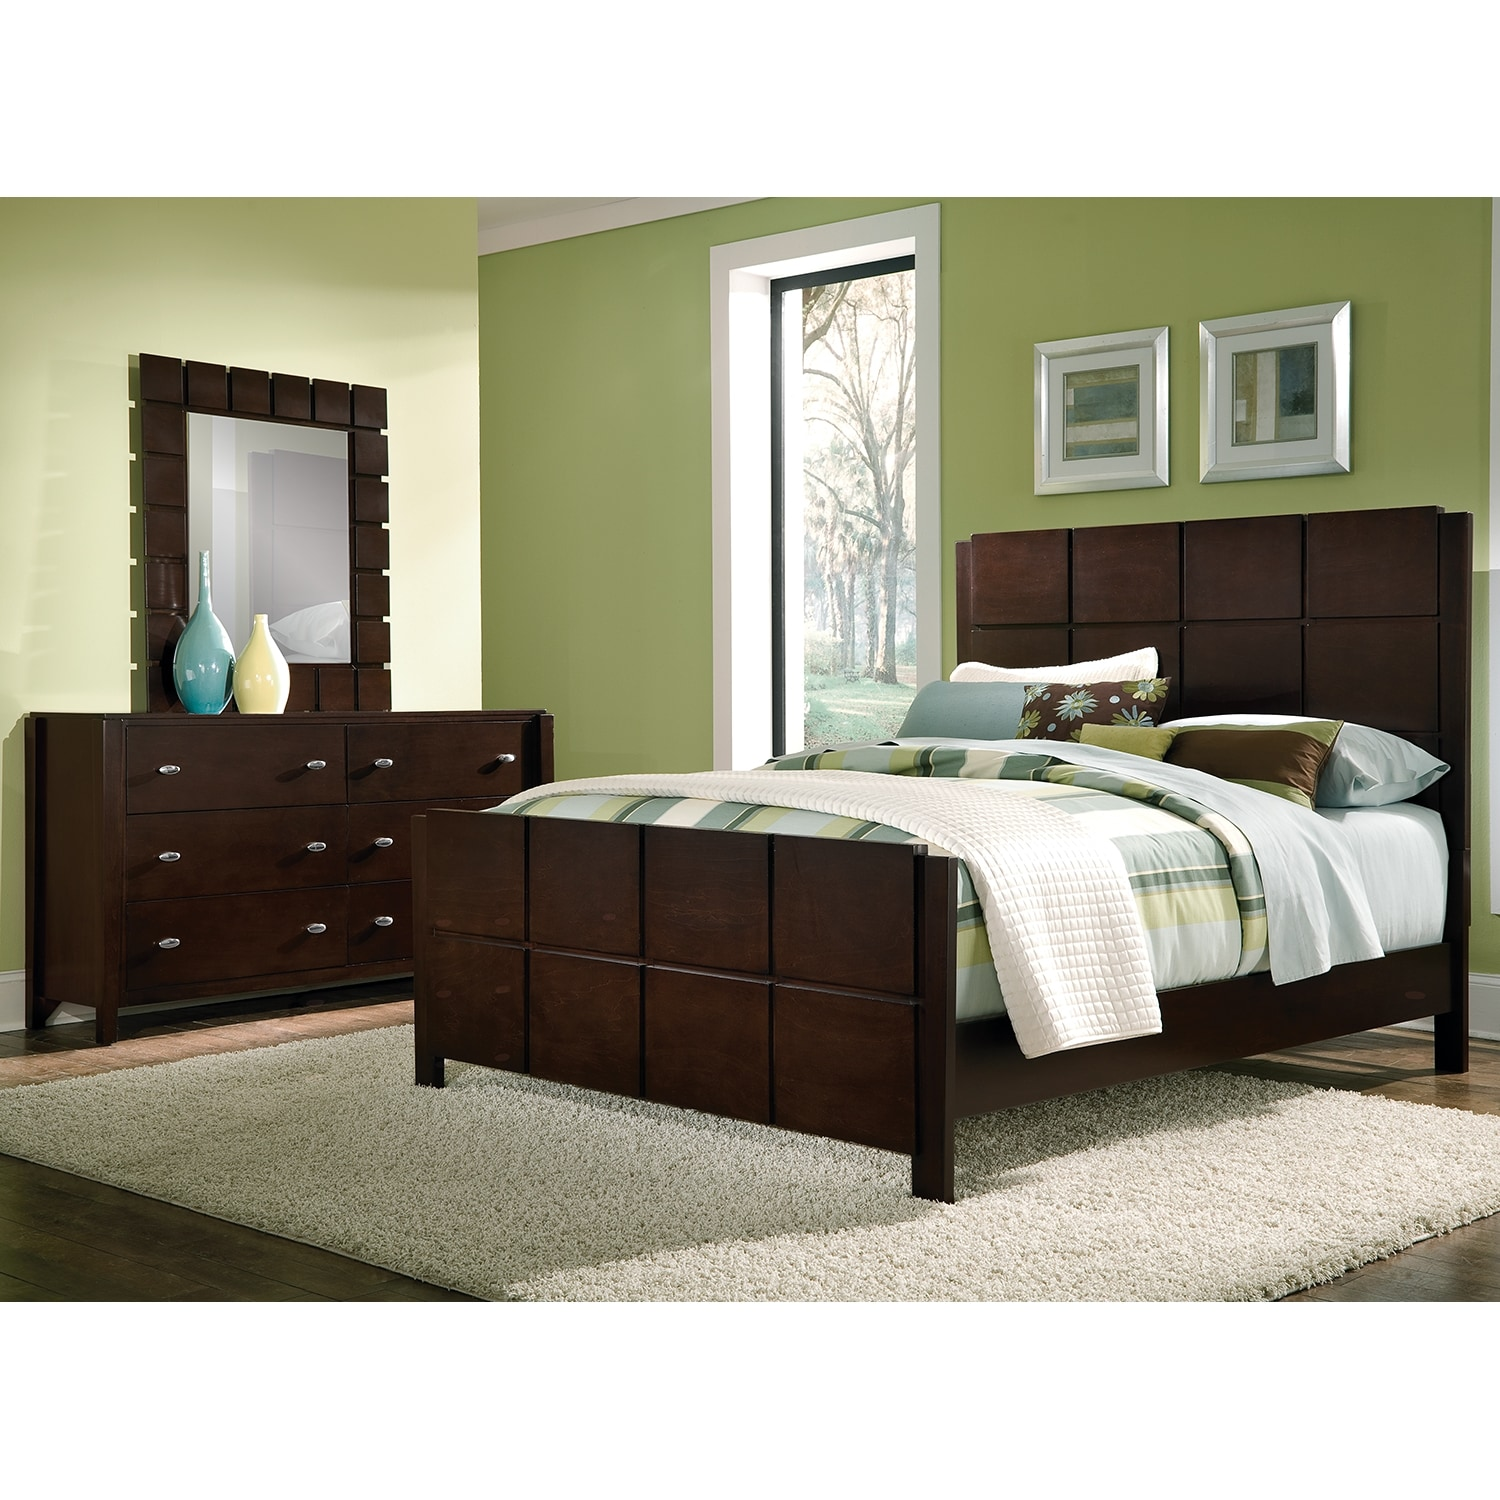 Mosaic 5 Pc. Queen Bedroom  Value City Furniture